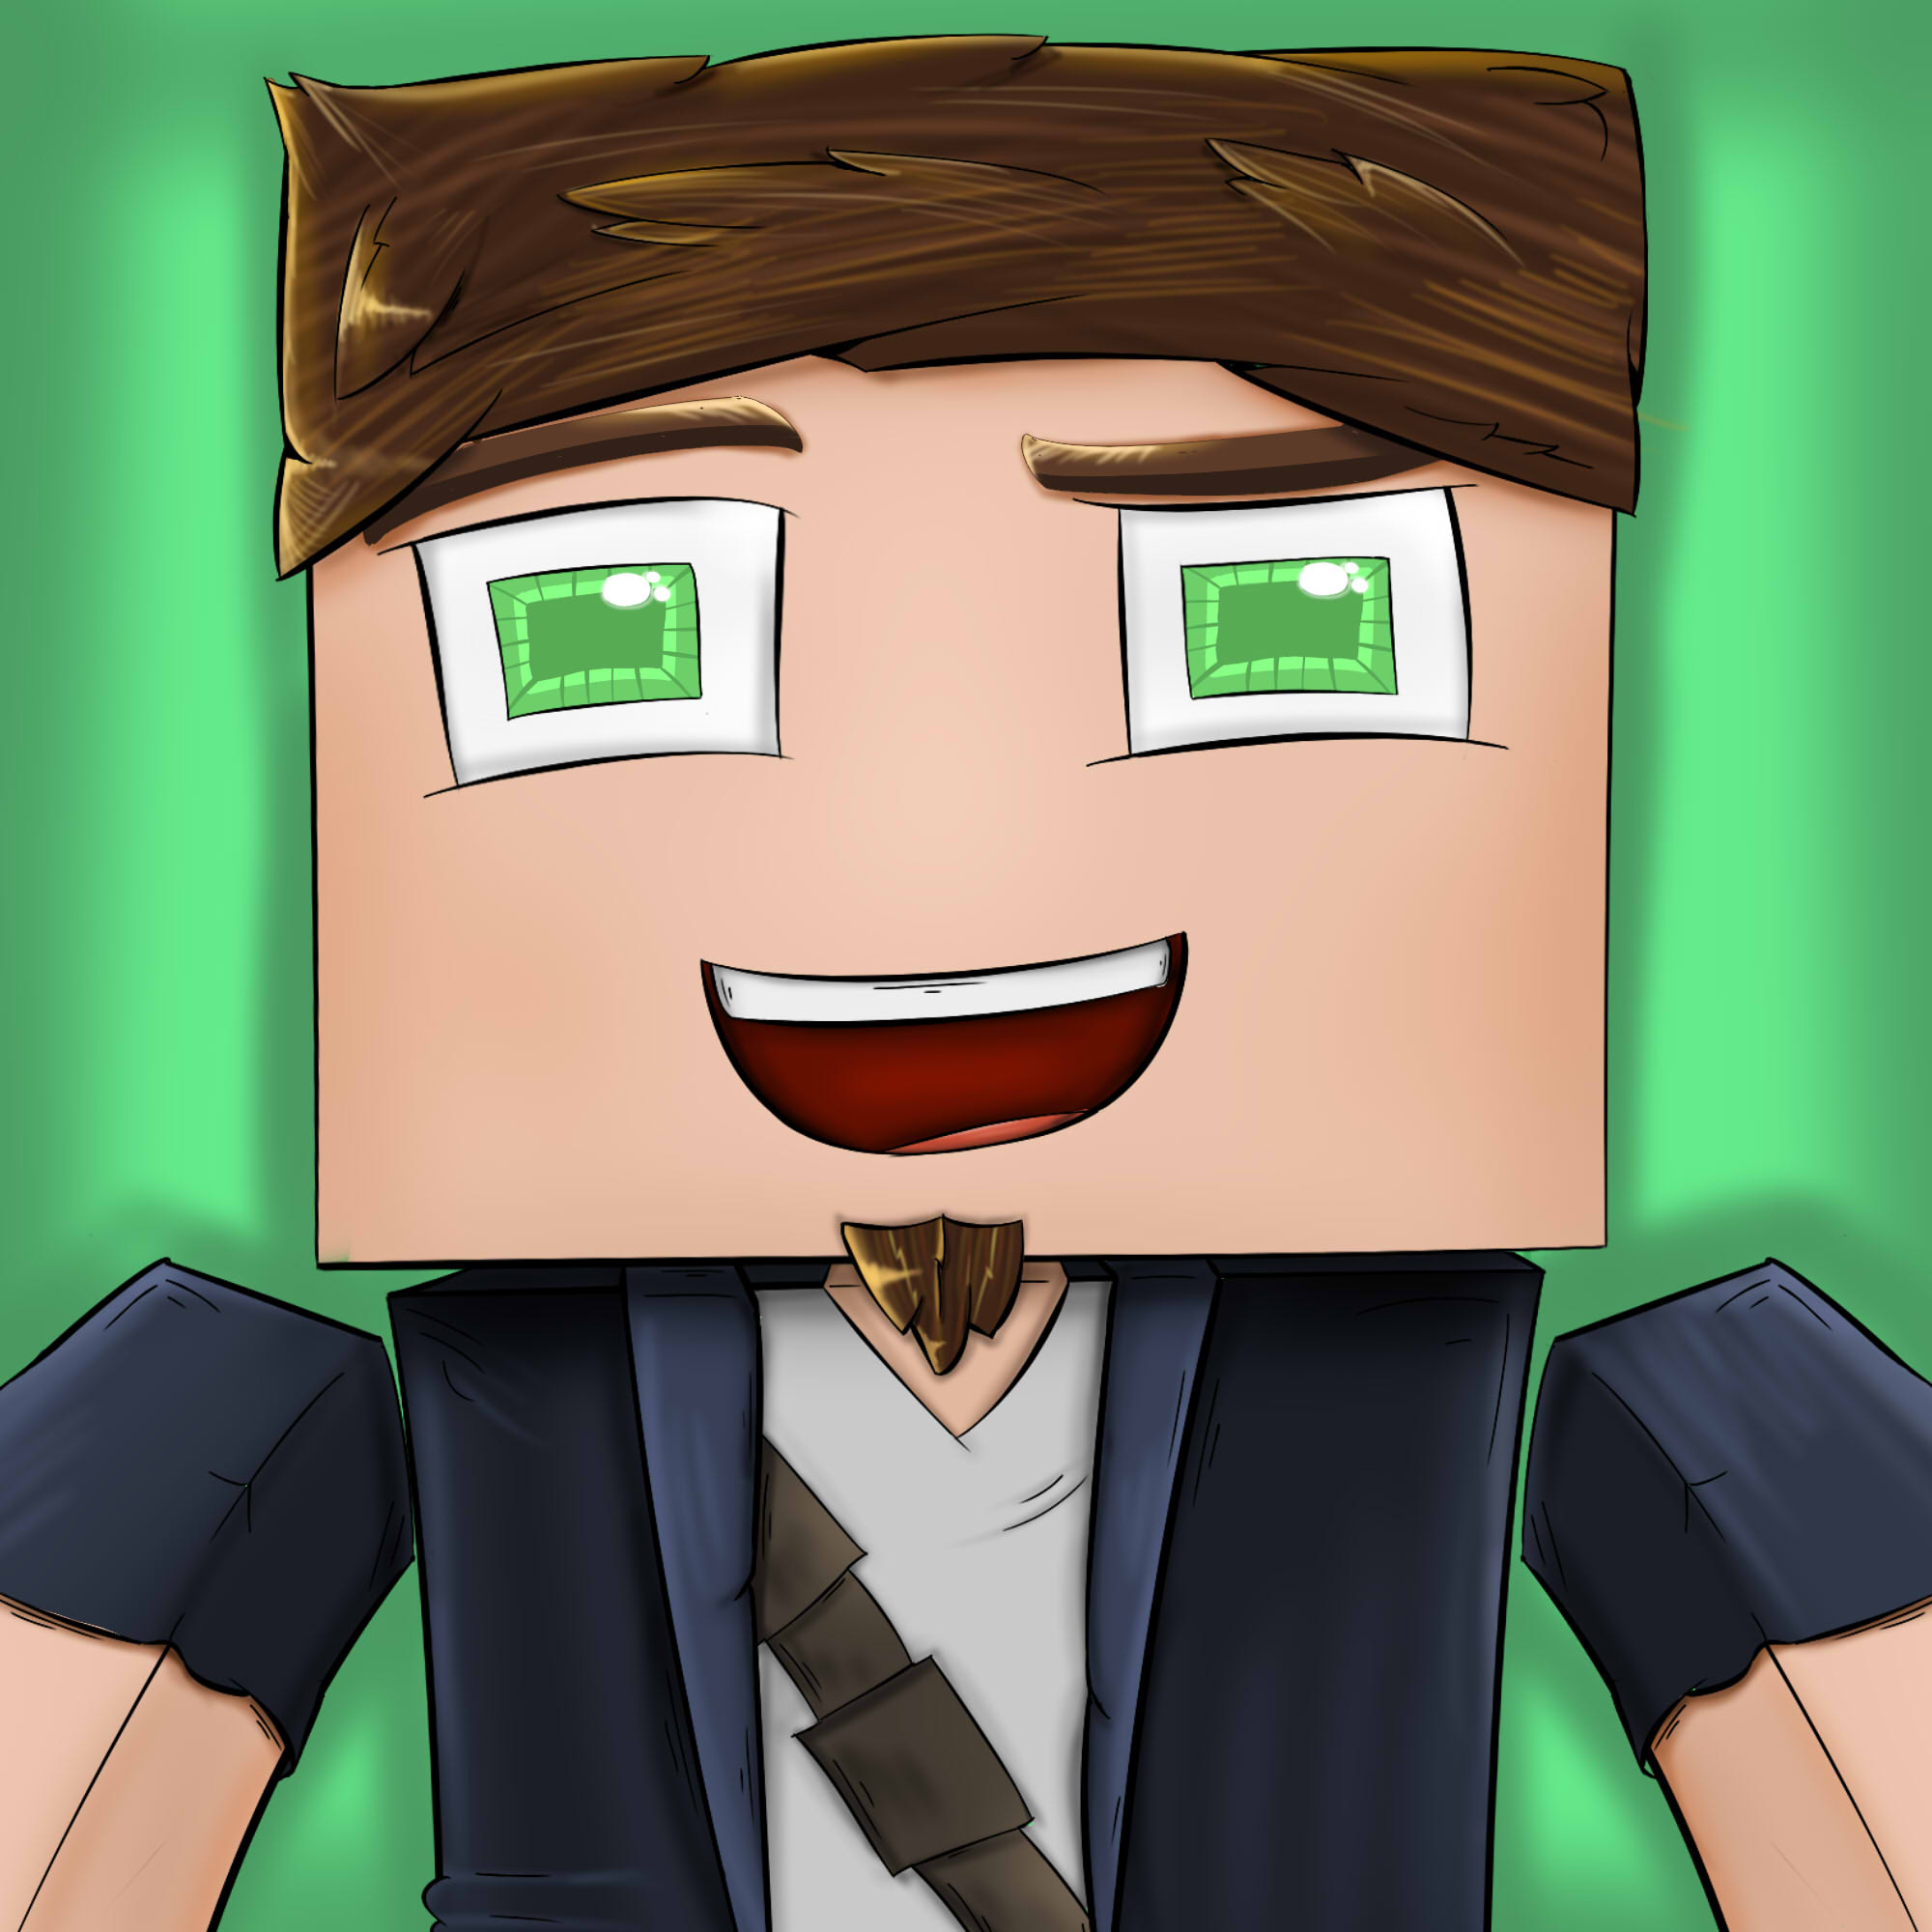 Free Download Minecraft Avatar Maker Trend Minecraft 2000x2000 For Your Desktop Mobile Tablet Explore 48 Minecraft Avatar Wallpaper Minecraft Avatar Wallpaper Avatar Backgrounds Avatar Wallpaper